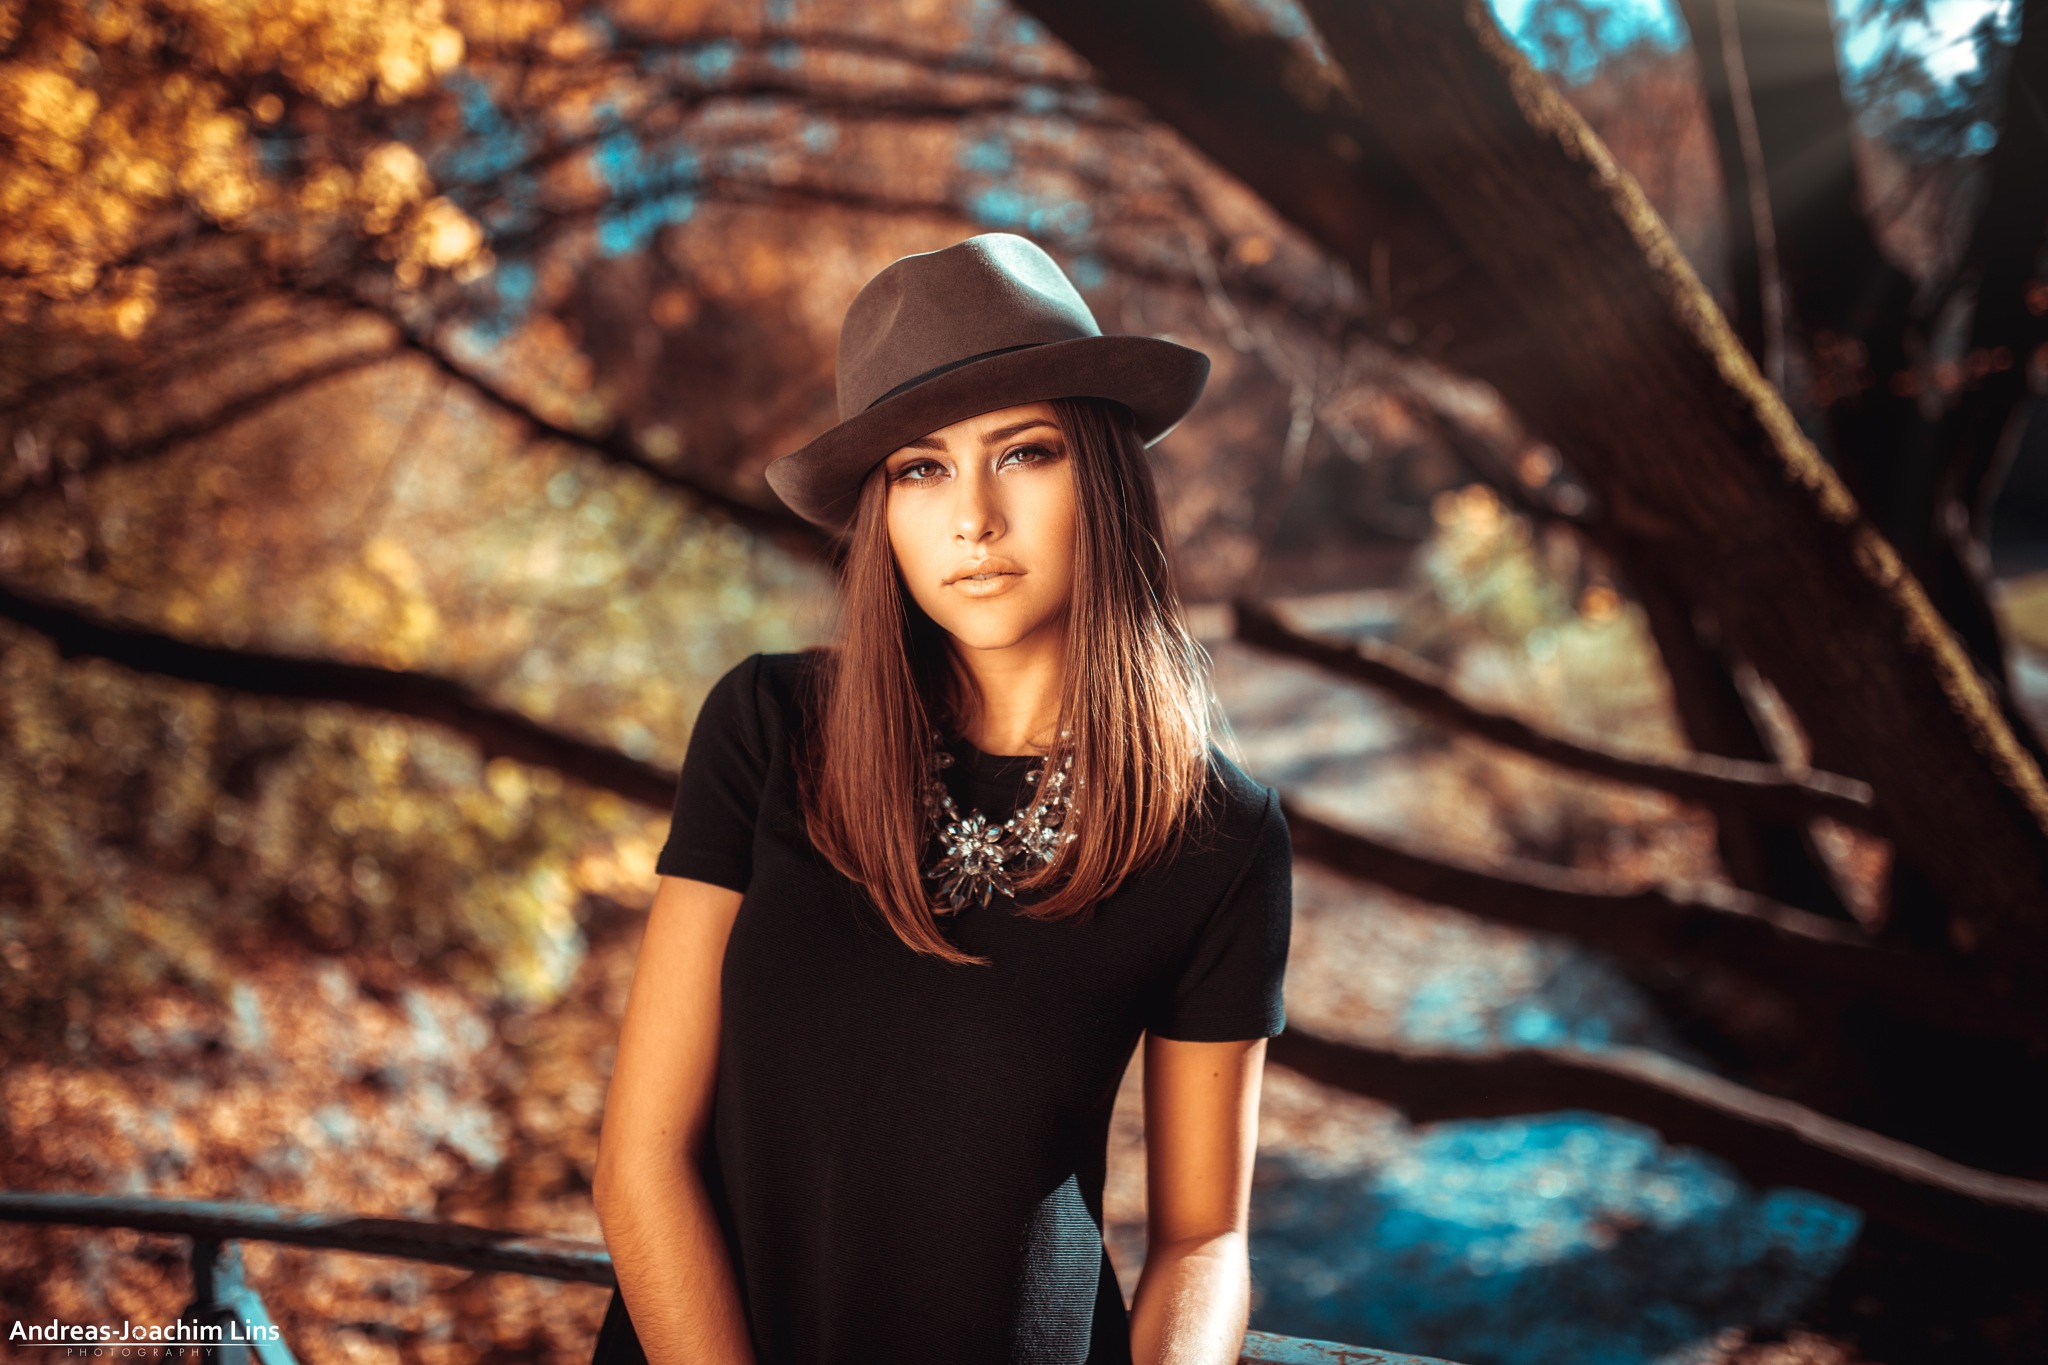 Young Girl - Old Hat by Andreas-Joachim Lins